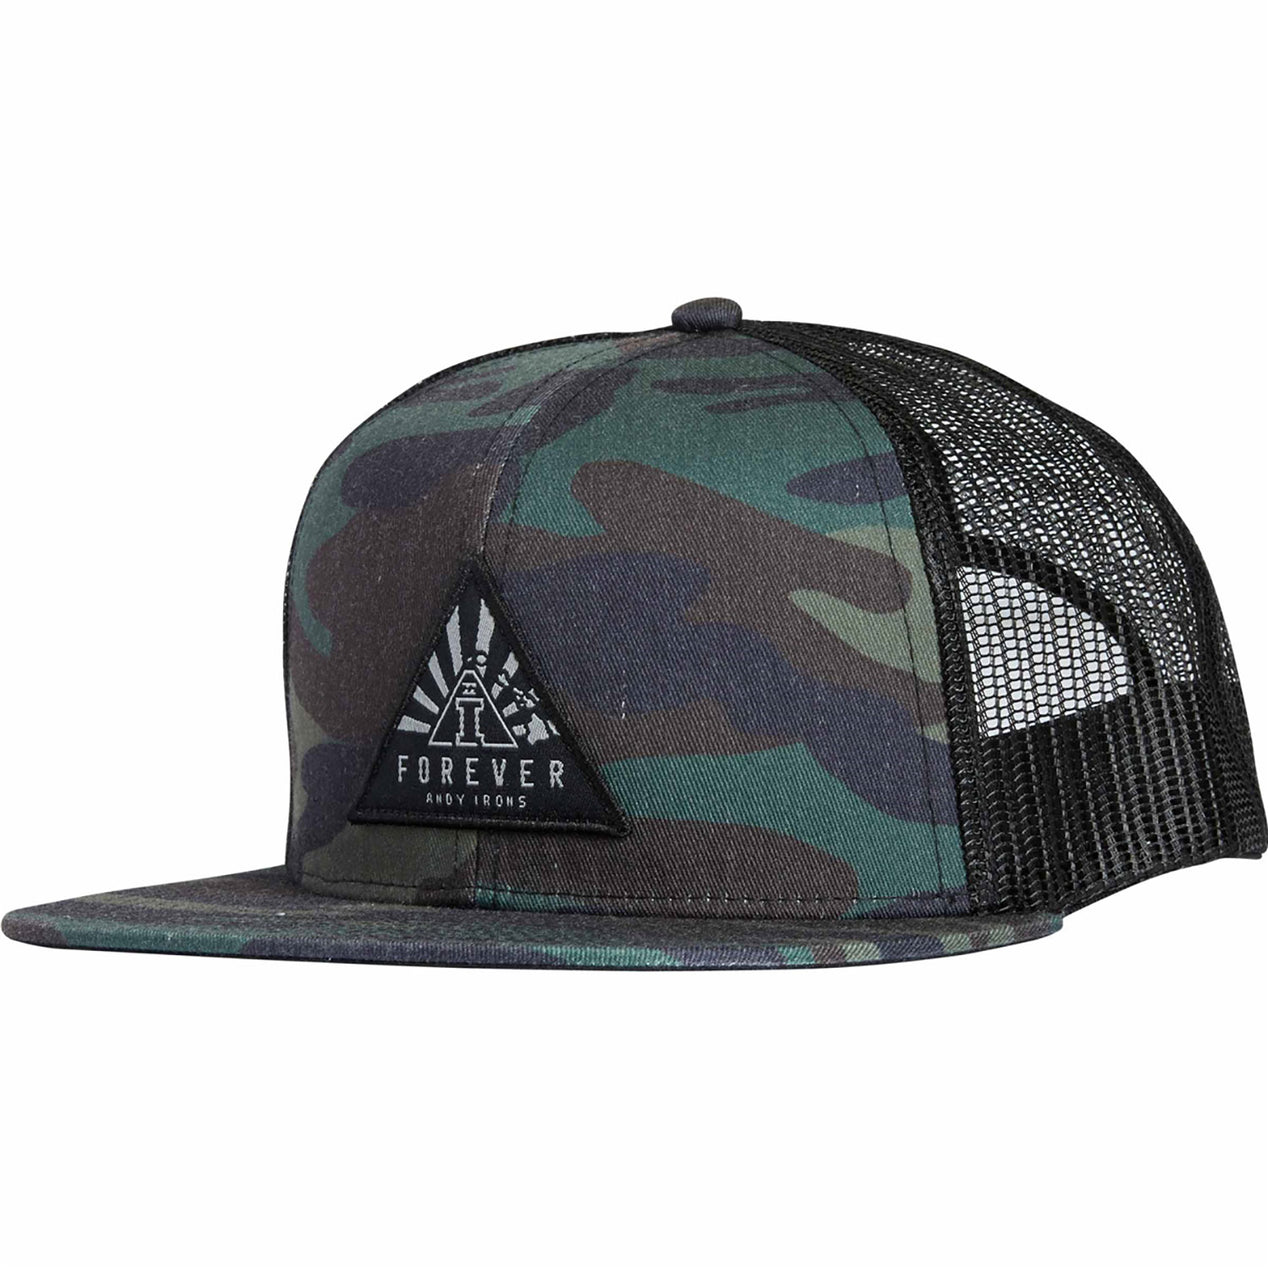 916381a4958b8 Billabong Men s Ai Forever Hat